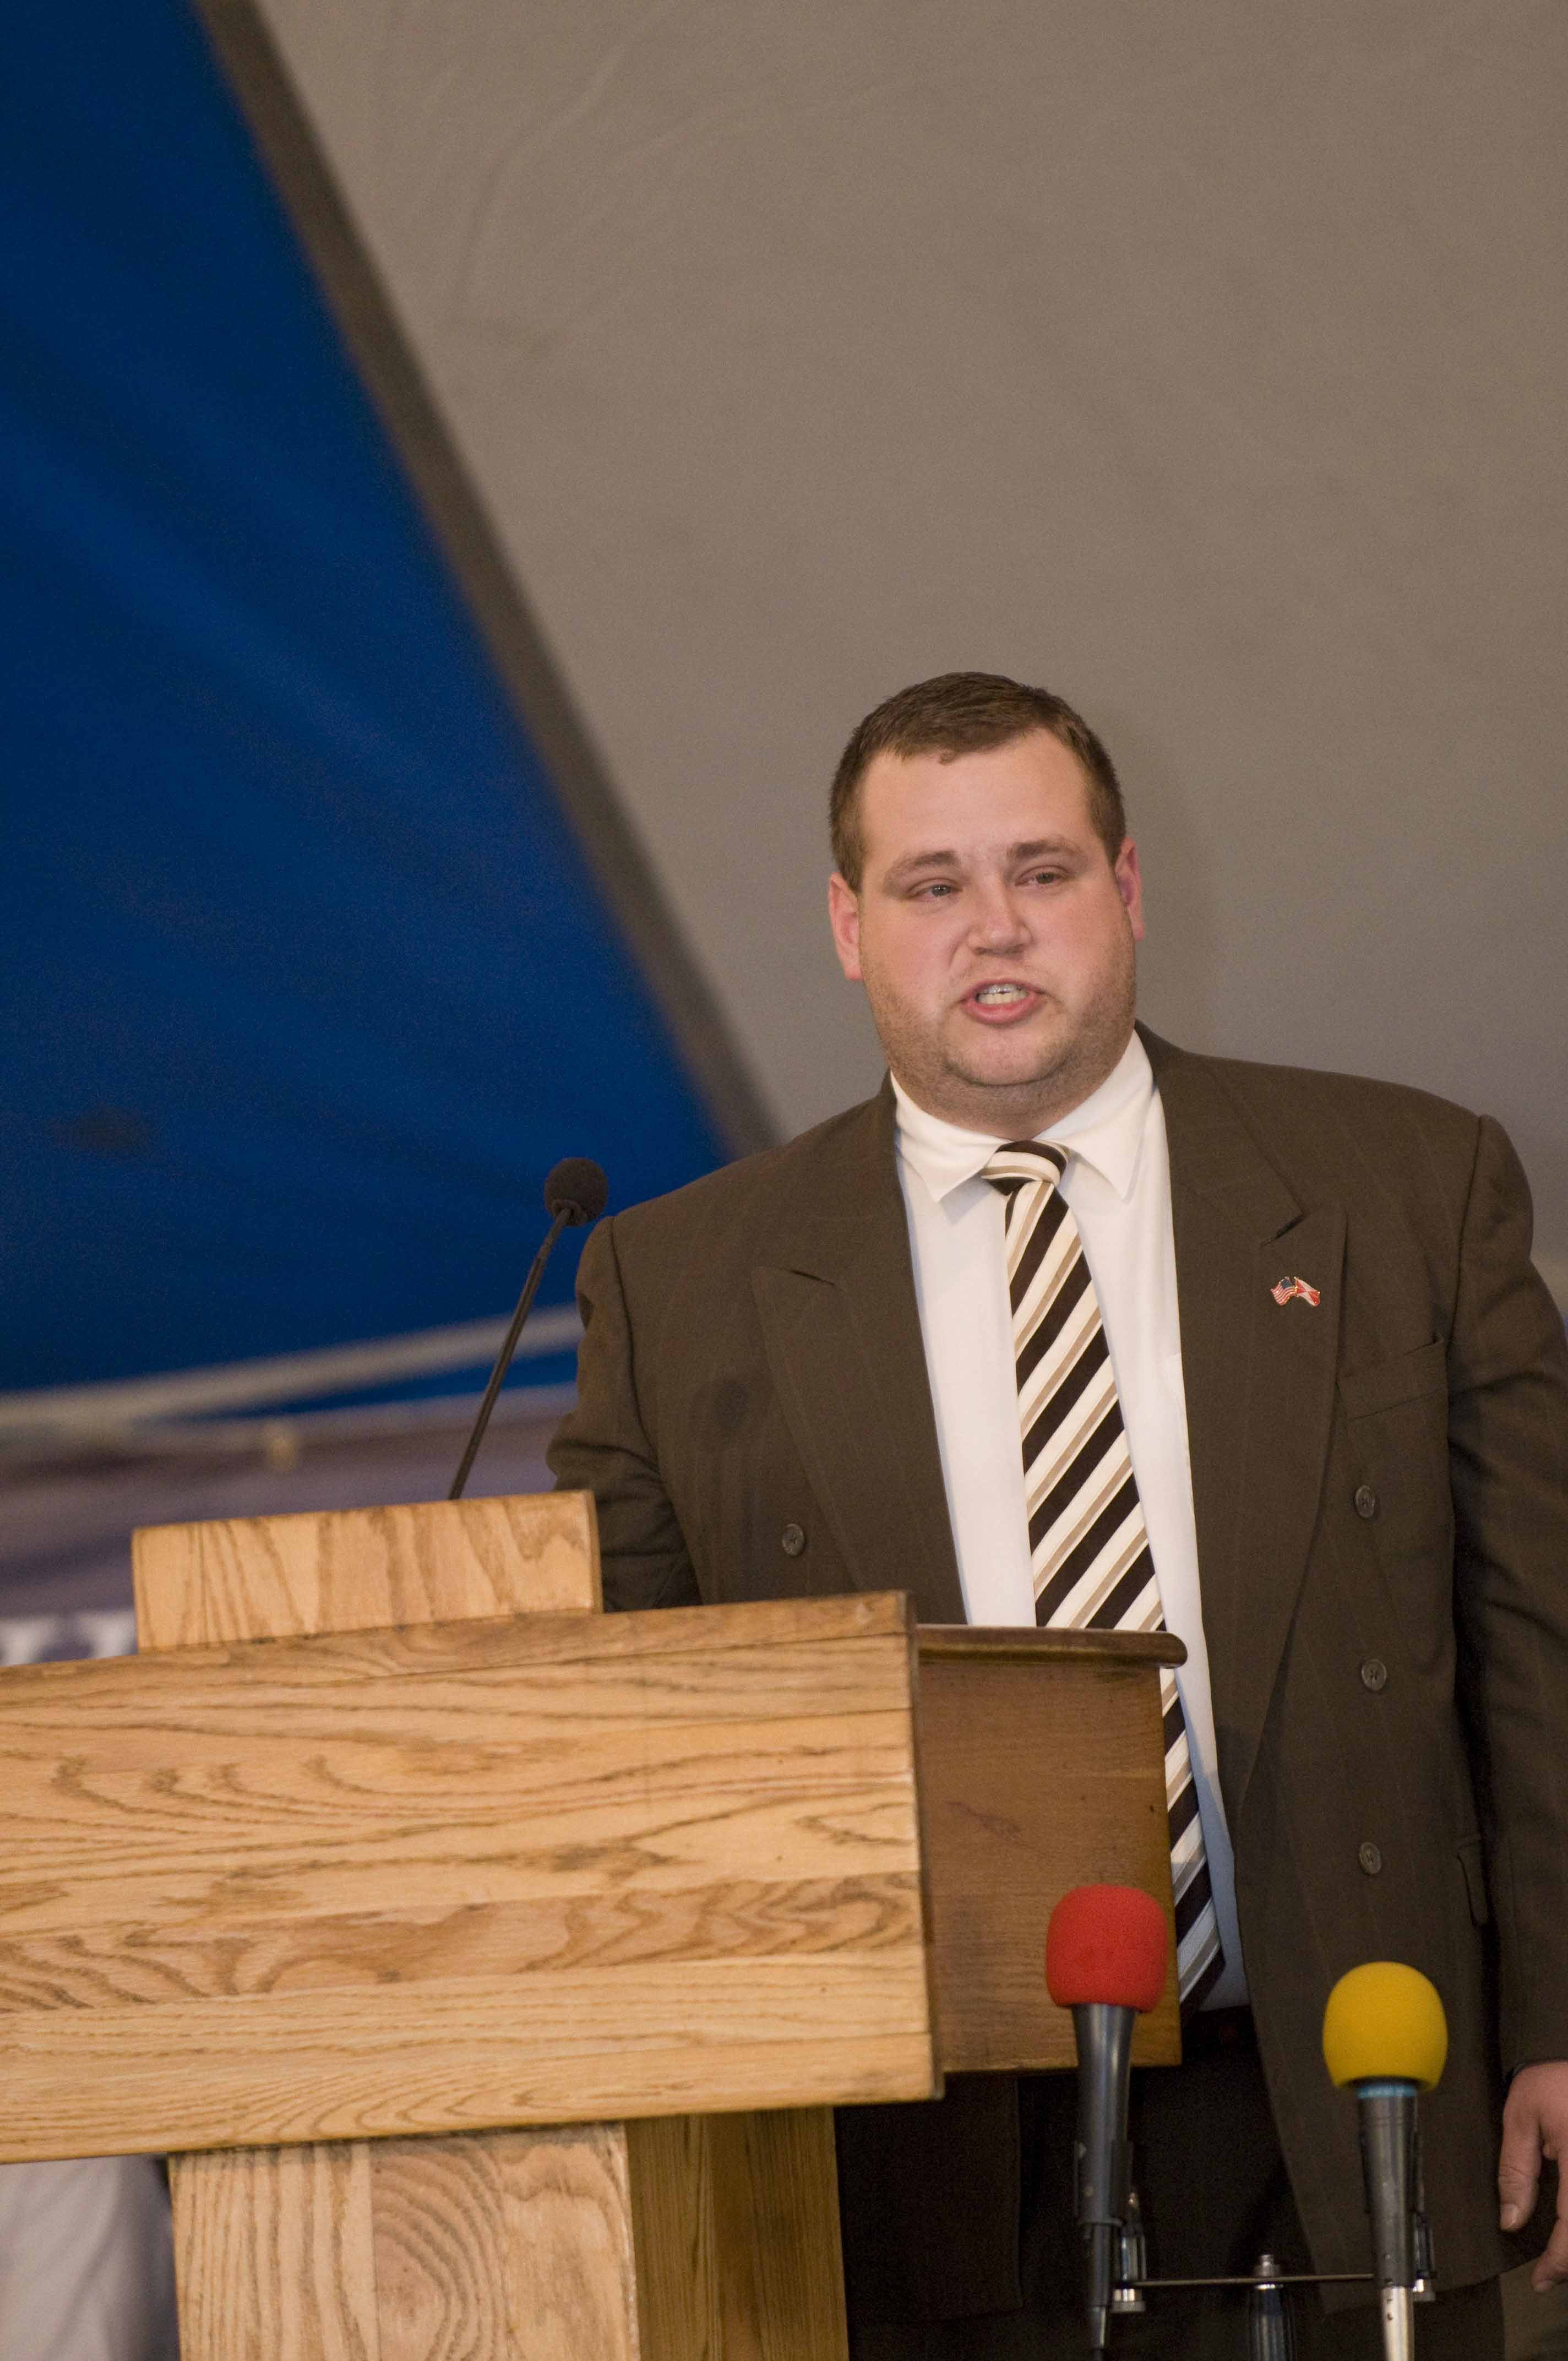 Camp_meeting_2011_231